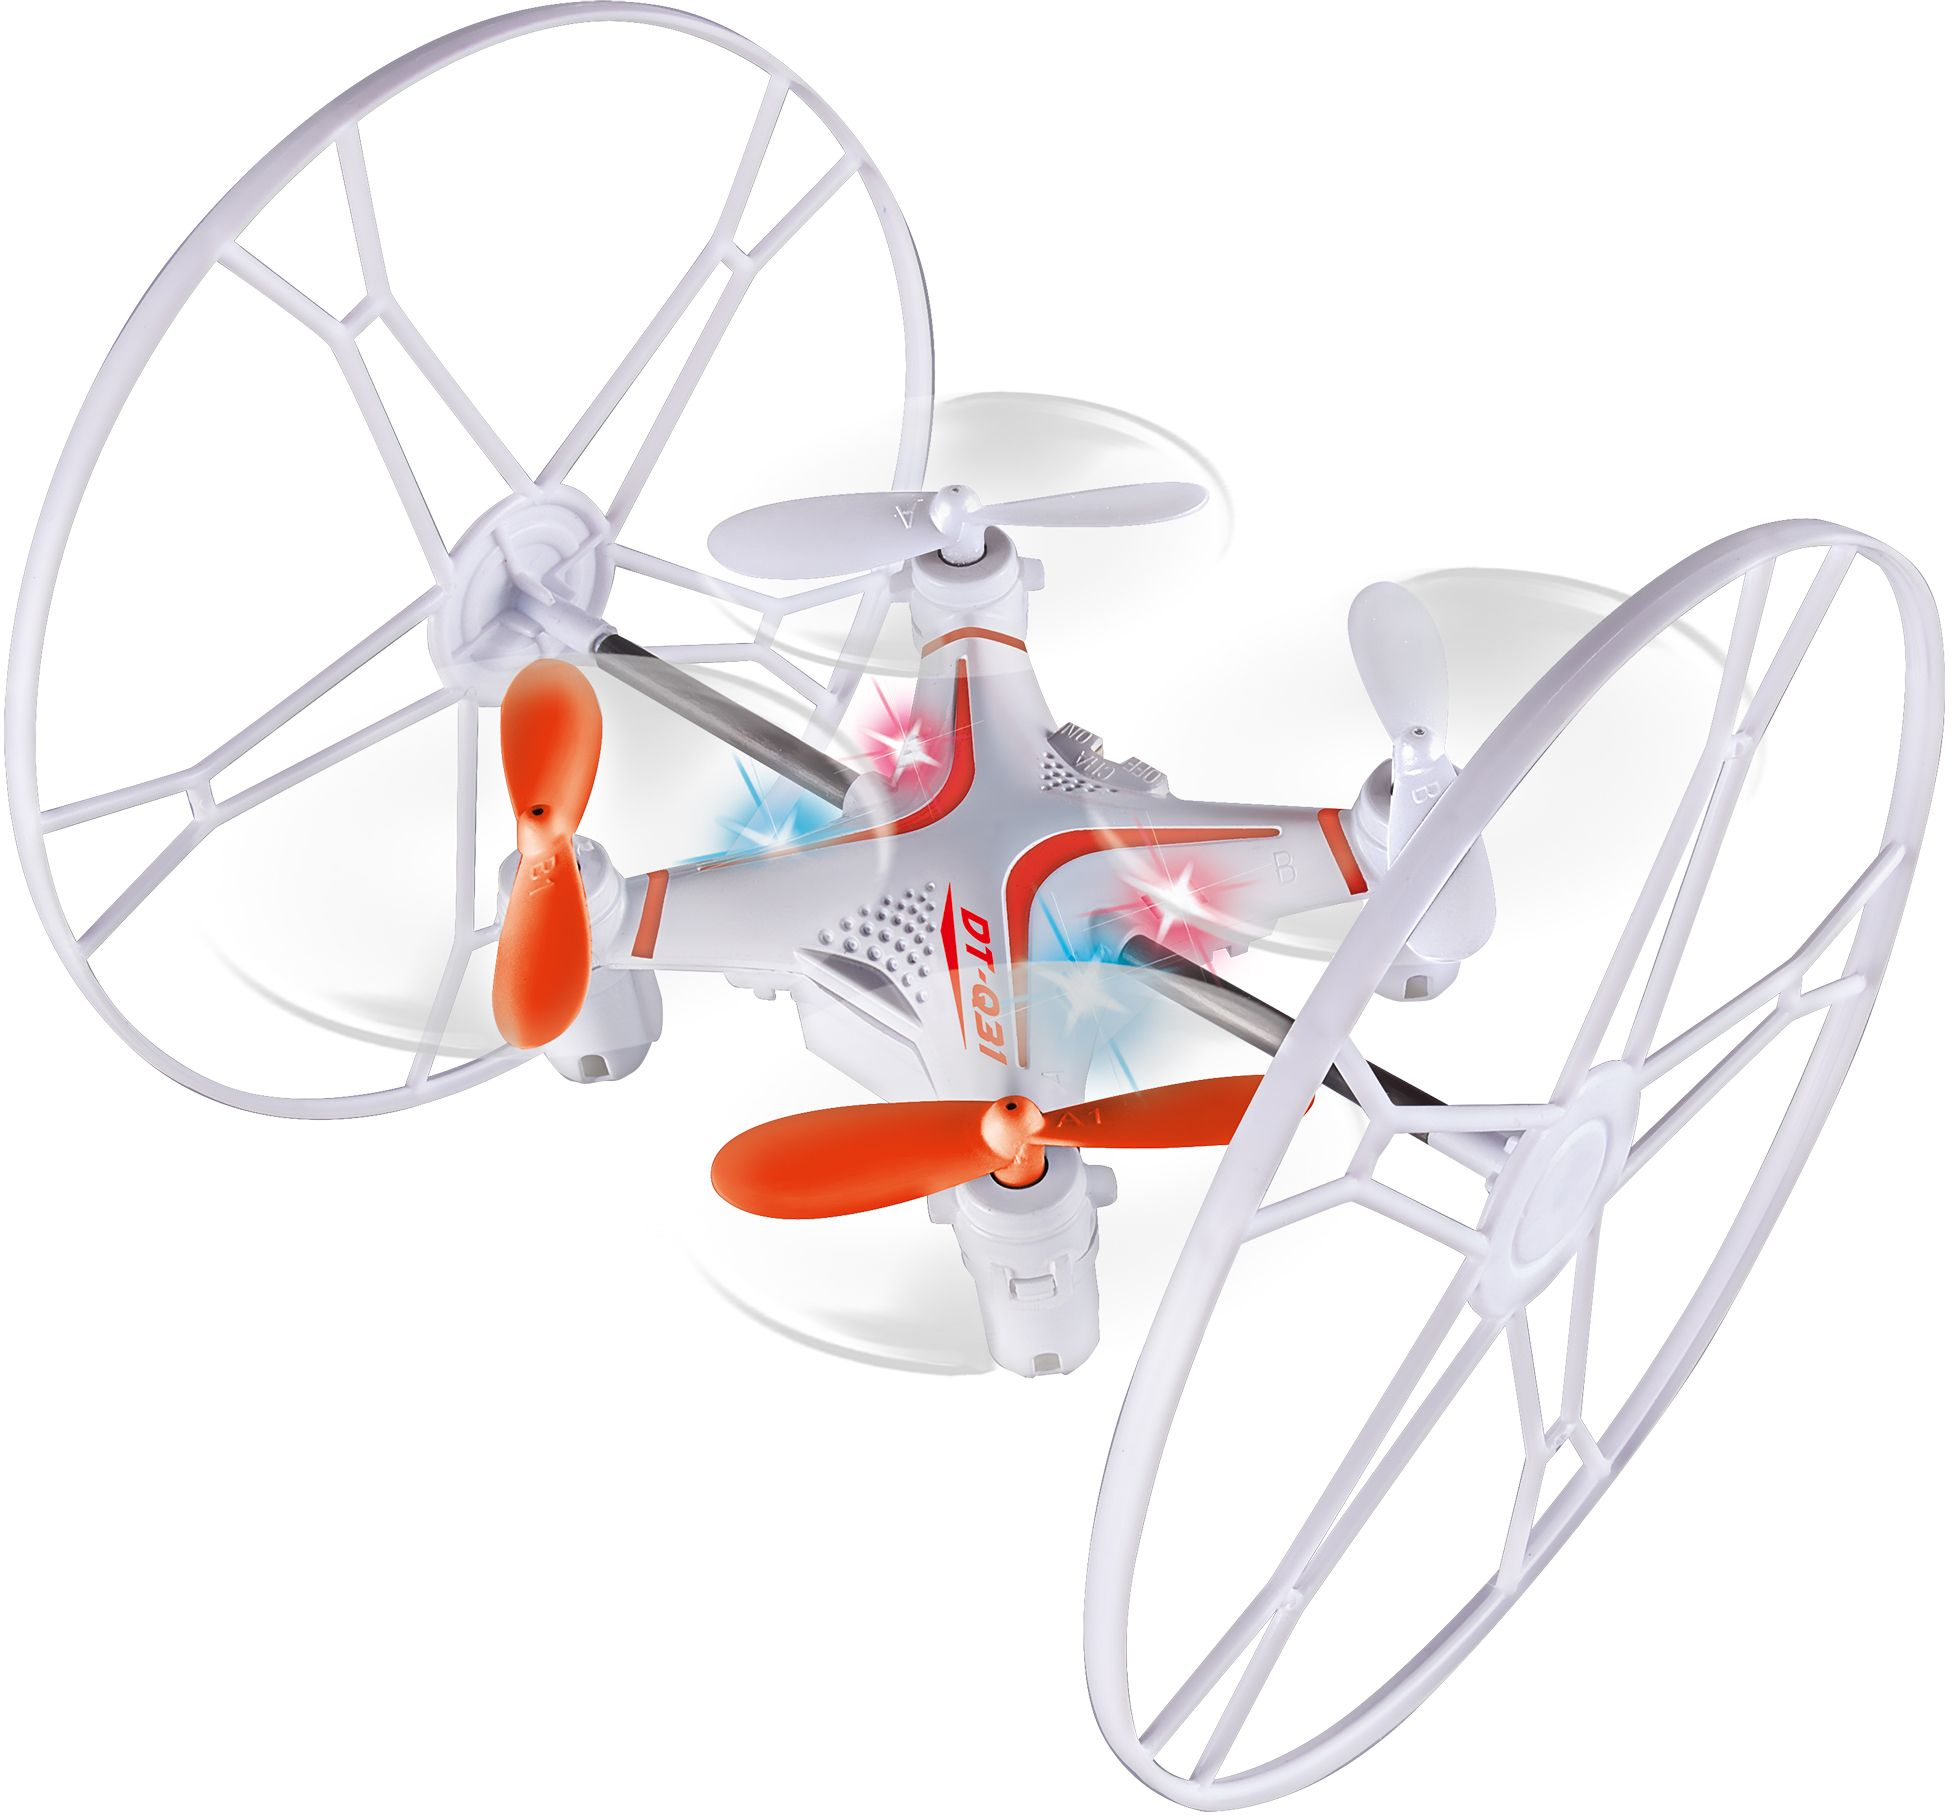 DICKIE TOYS Dickie Toys RC Quadrocopter, »3 in 1 Quadrocopter«